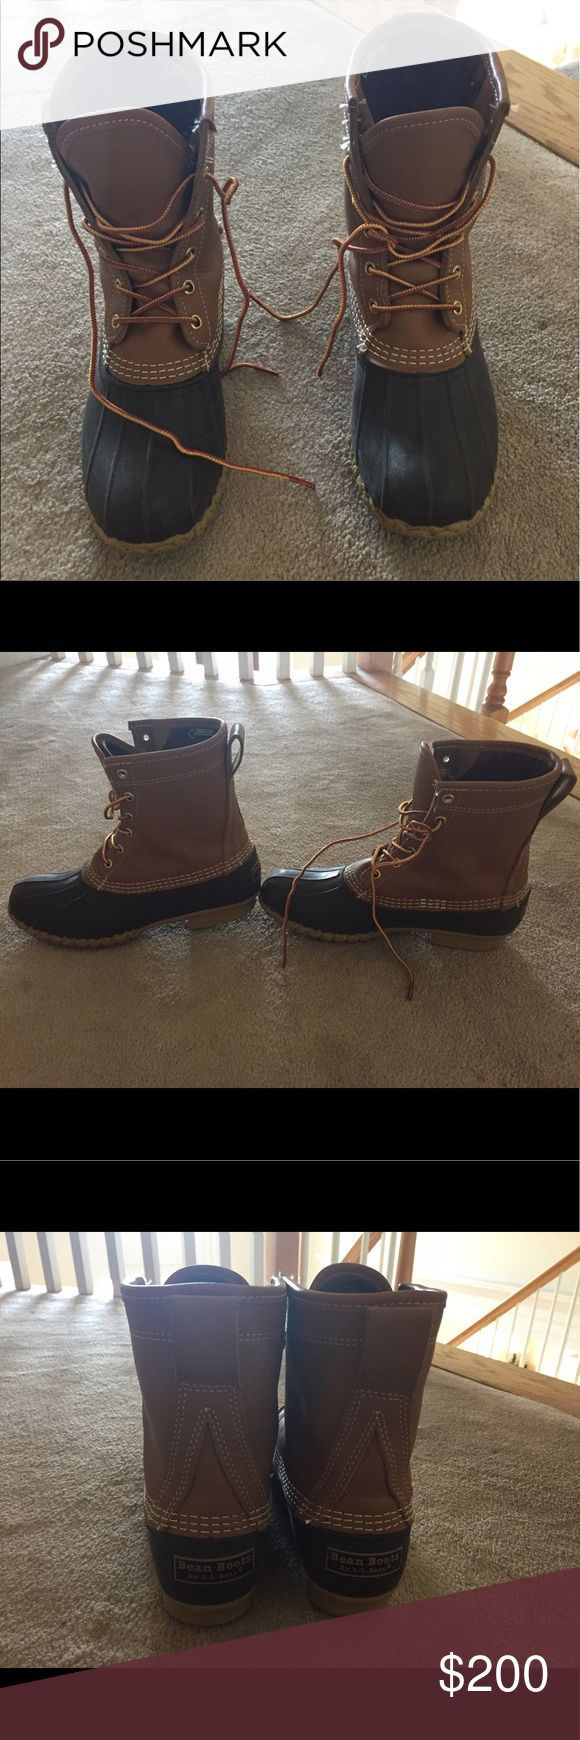 """Women's LL Bean Boots 8"""" Gore-Tex Thinsulate Warm, tight fitting, worn lightly mostly in rain or snow. Still in great case condition. L.L. Bean Shoes Winter & Rain Boots"""